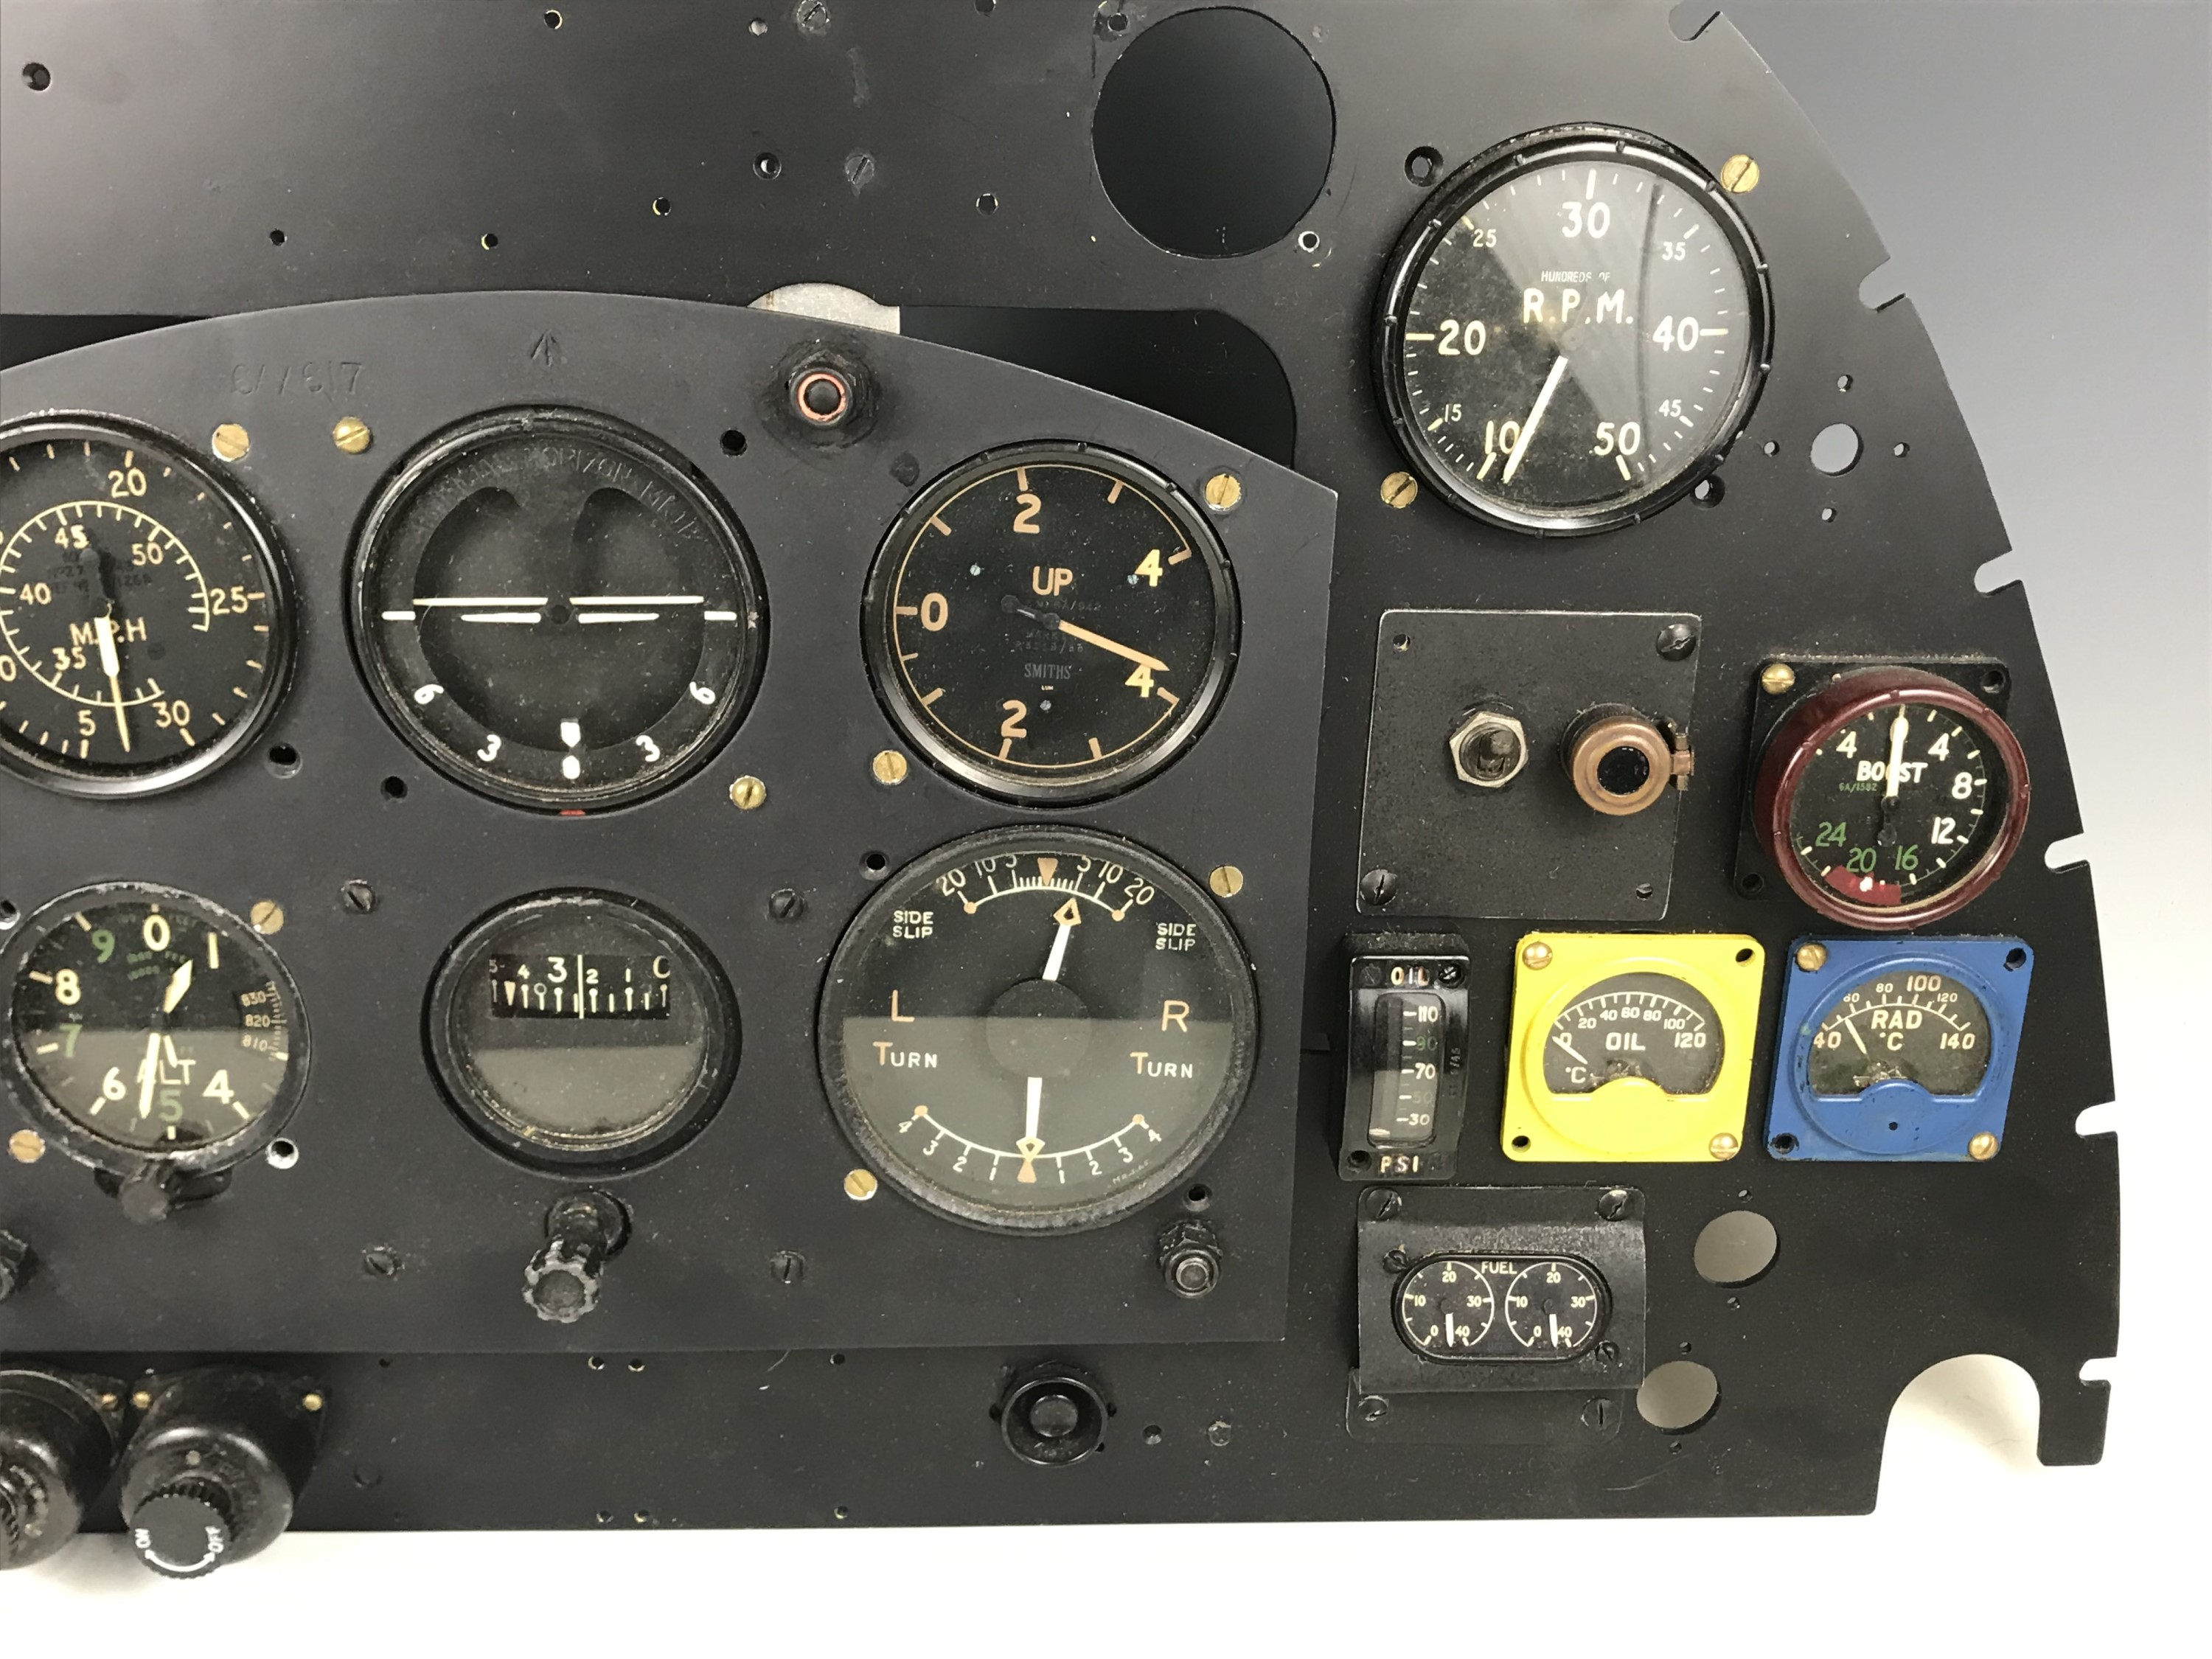 Lot 669 - A partial recreation of a Spitfire cockpit instrument panel using period instruments